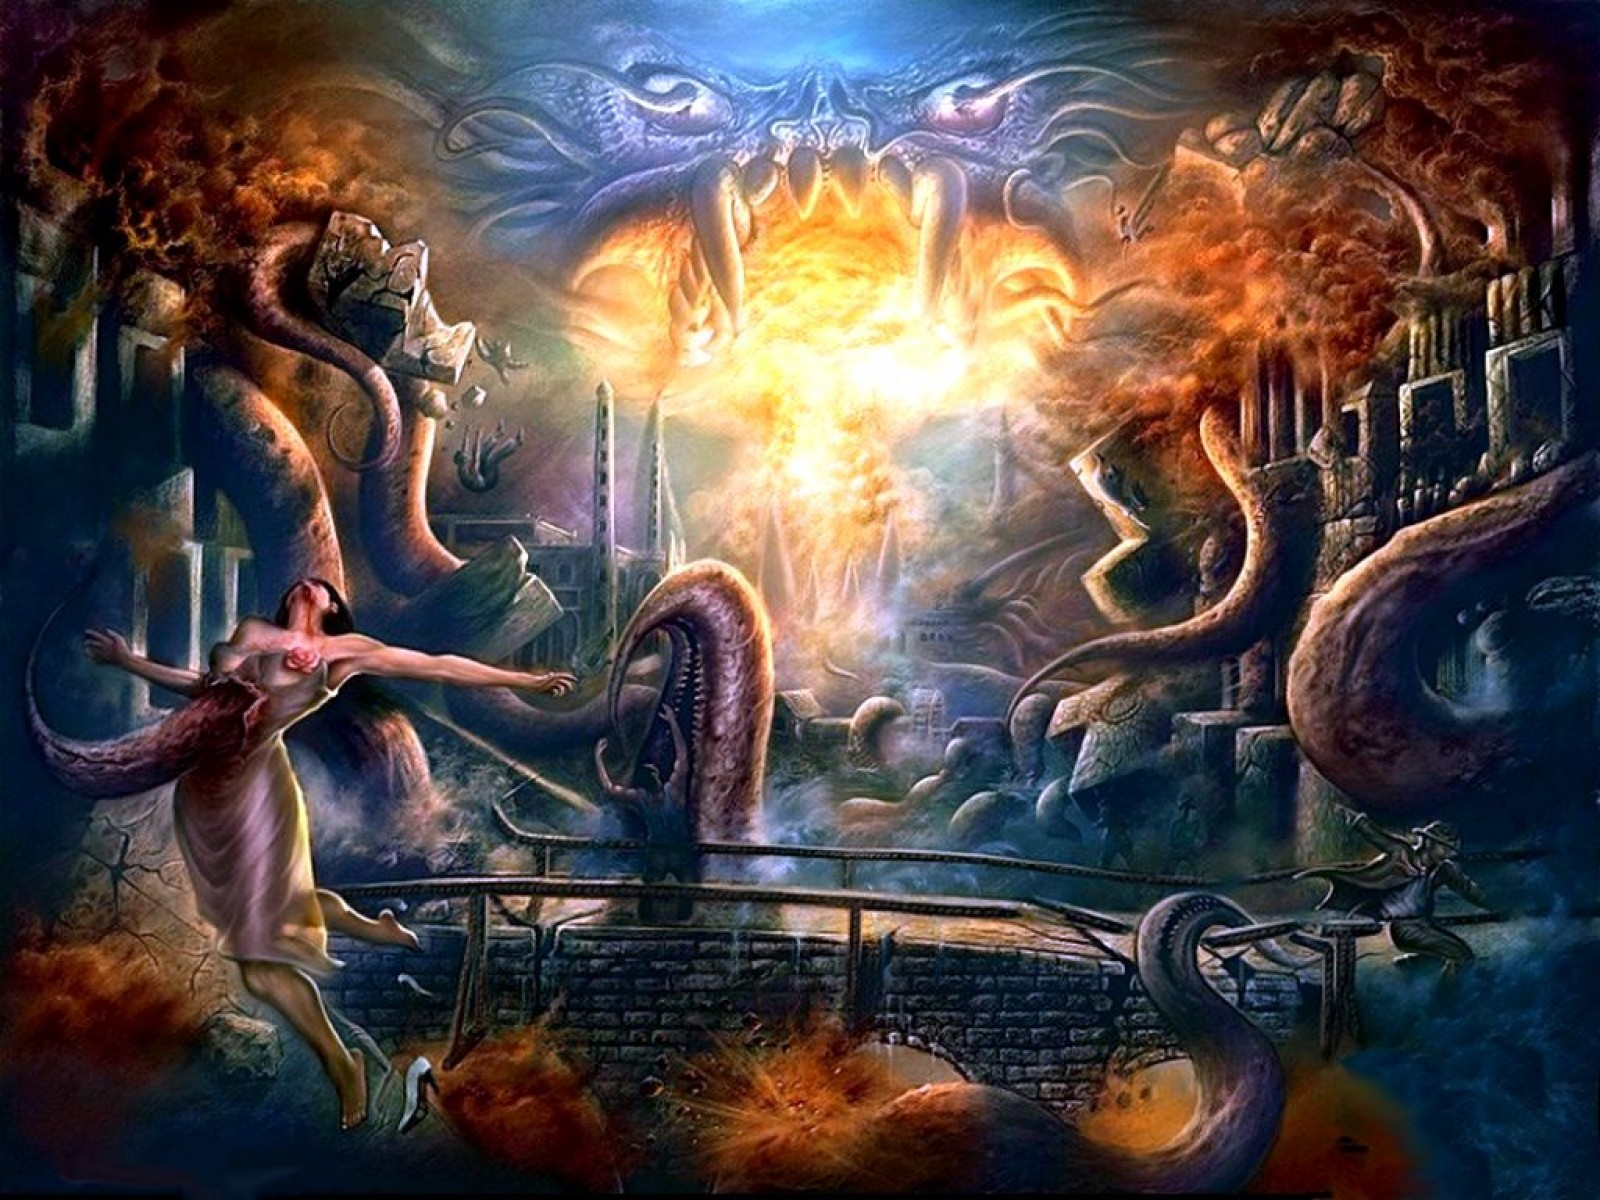 Hp Lovecraft Art Wallpapers: Cthulhu Wallpaper And Background